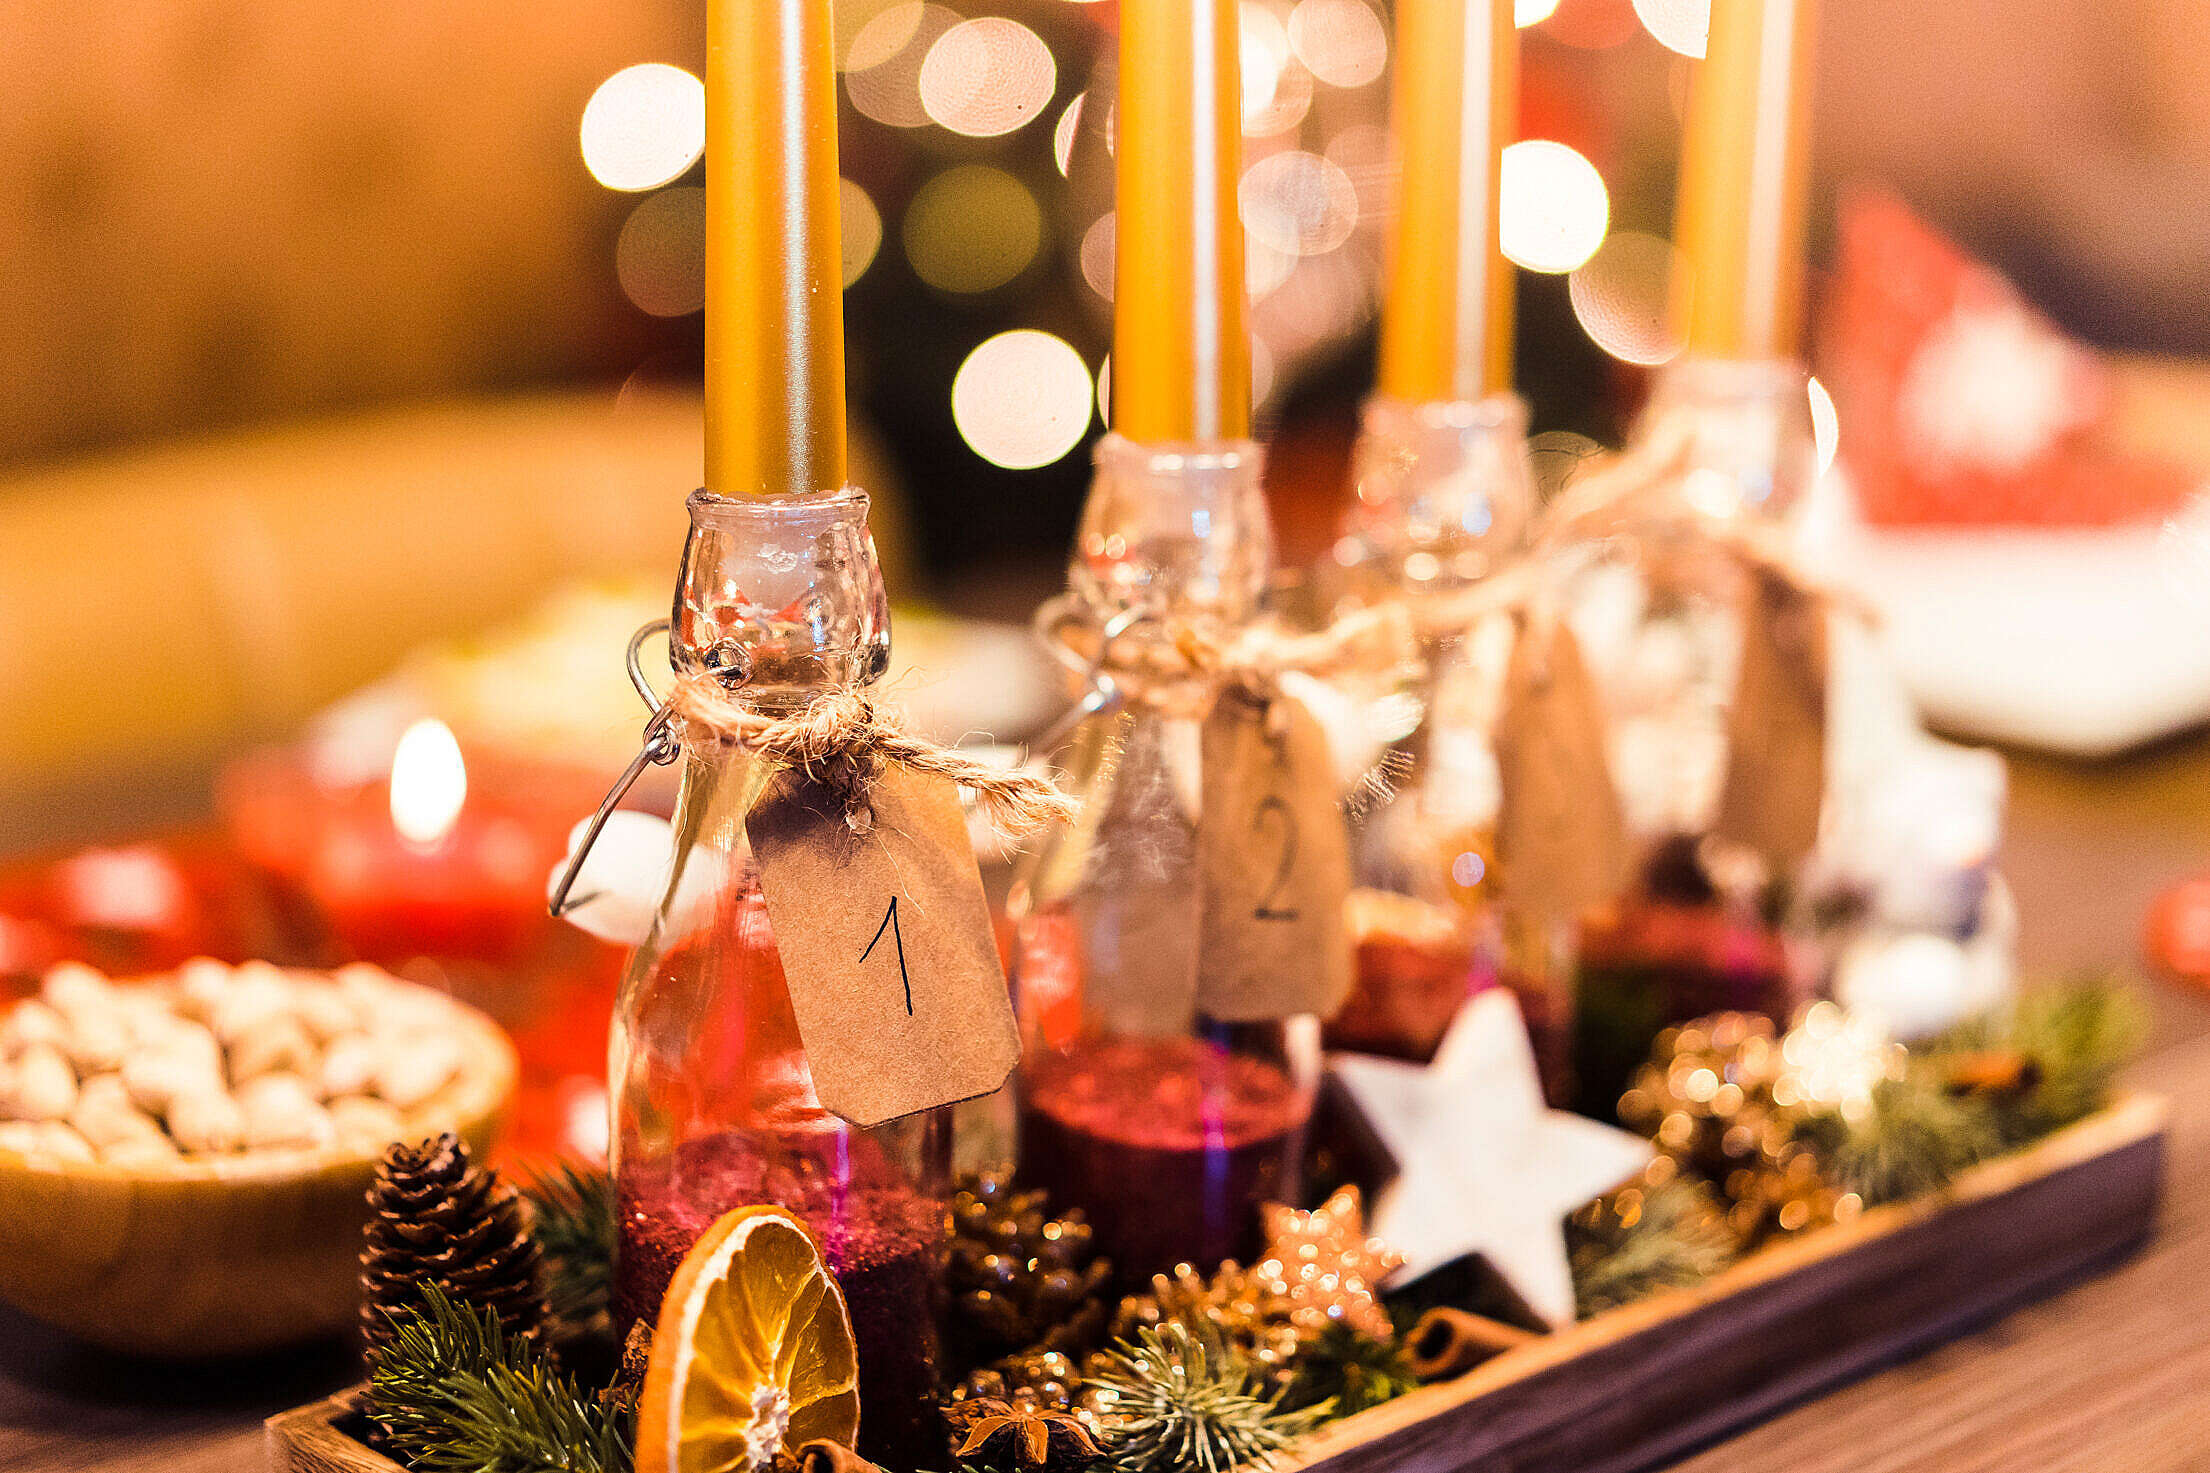 Handmade Do-It-Yourself Advent Candle #2 Free Stock Photo